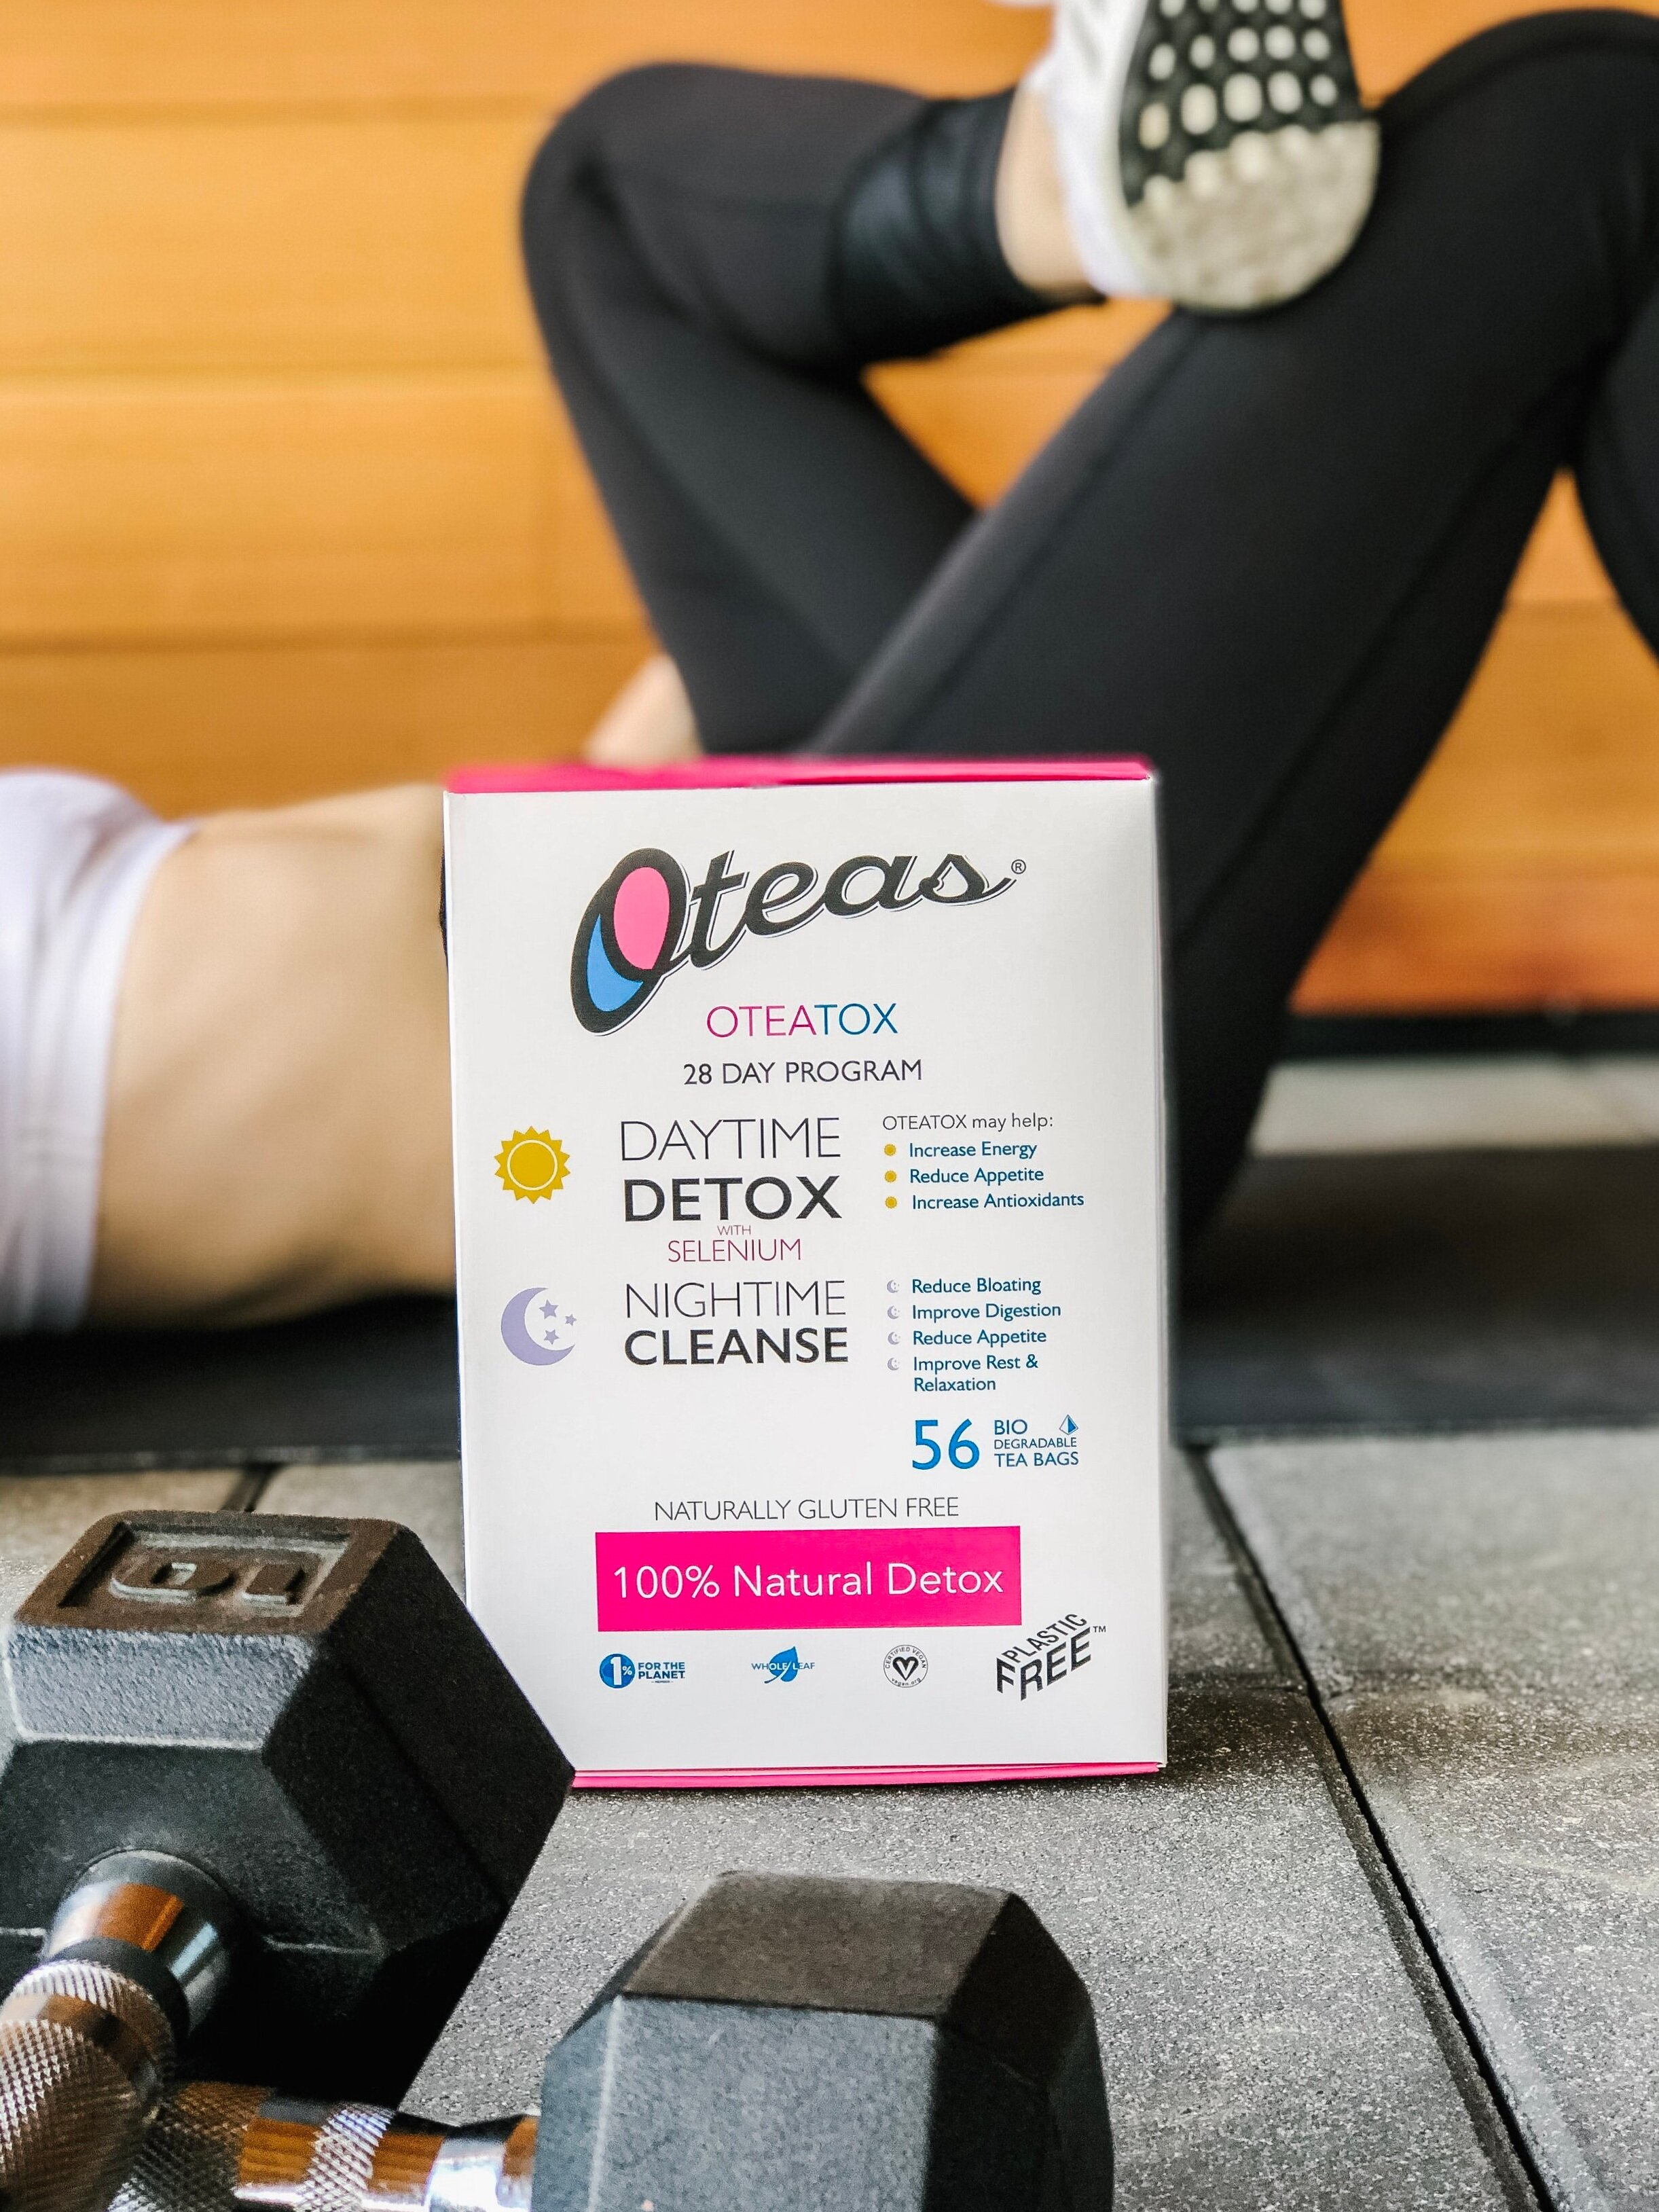 Benefits Include: - ◽Increase Antioxidants◽Boost Your Immune System◽Increase Energy◽Reduce Appetite◽Reduce Bloating◽Improve Digestion◽Enhance Rest and Relaxation